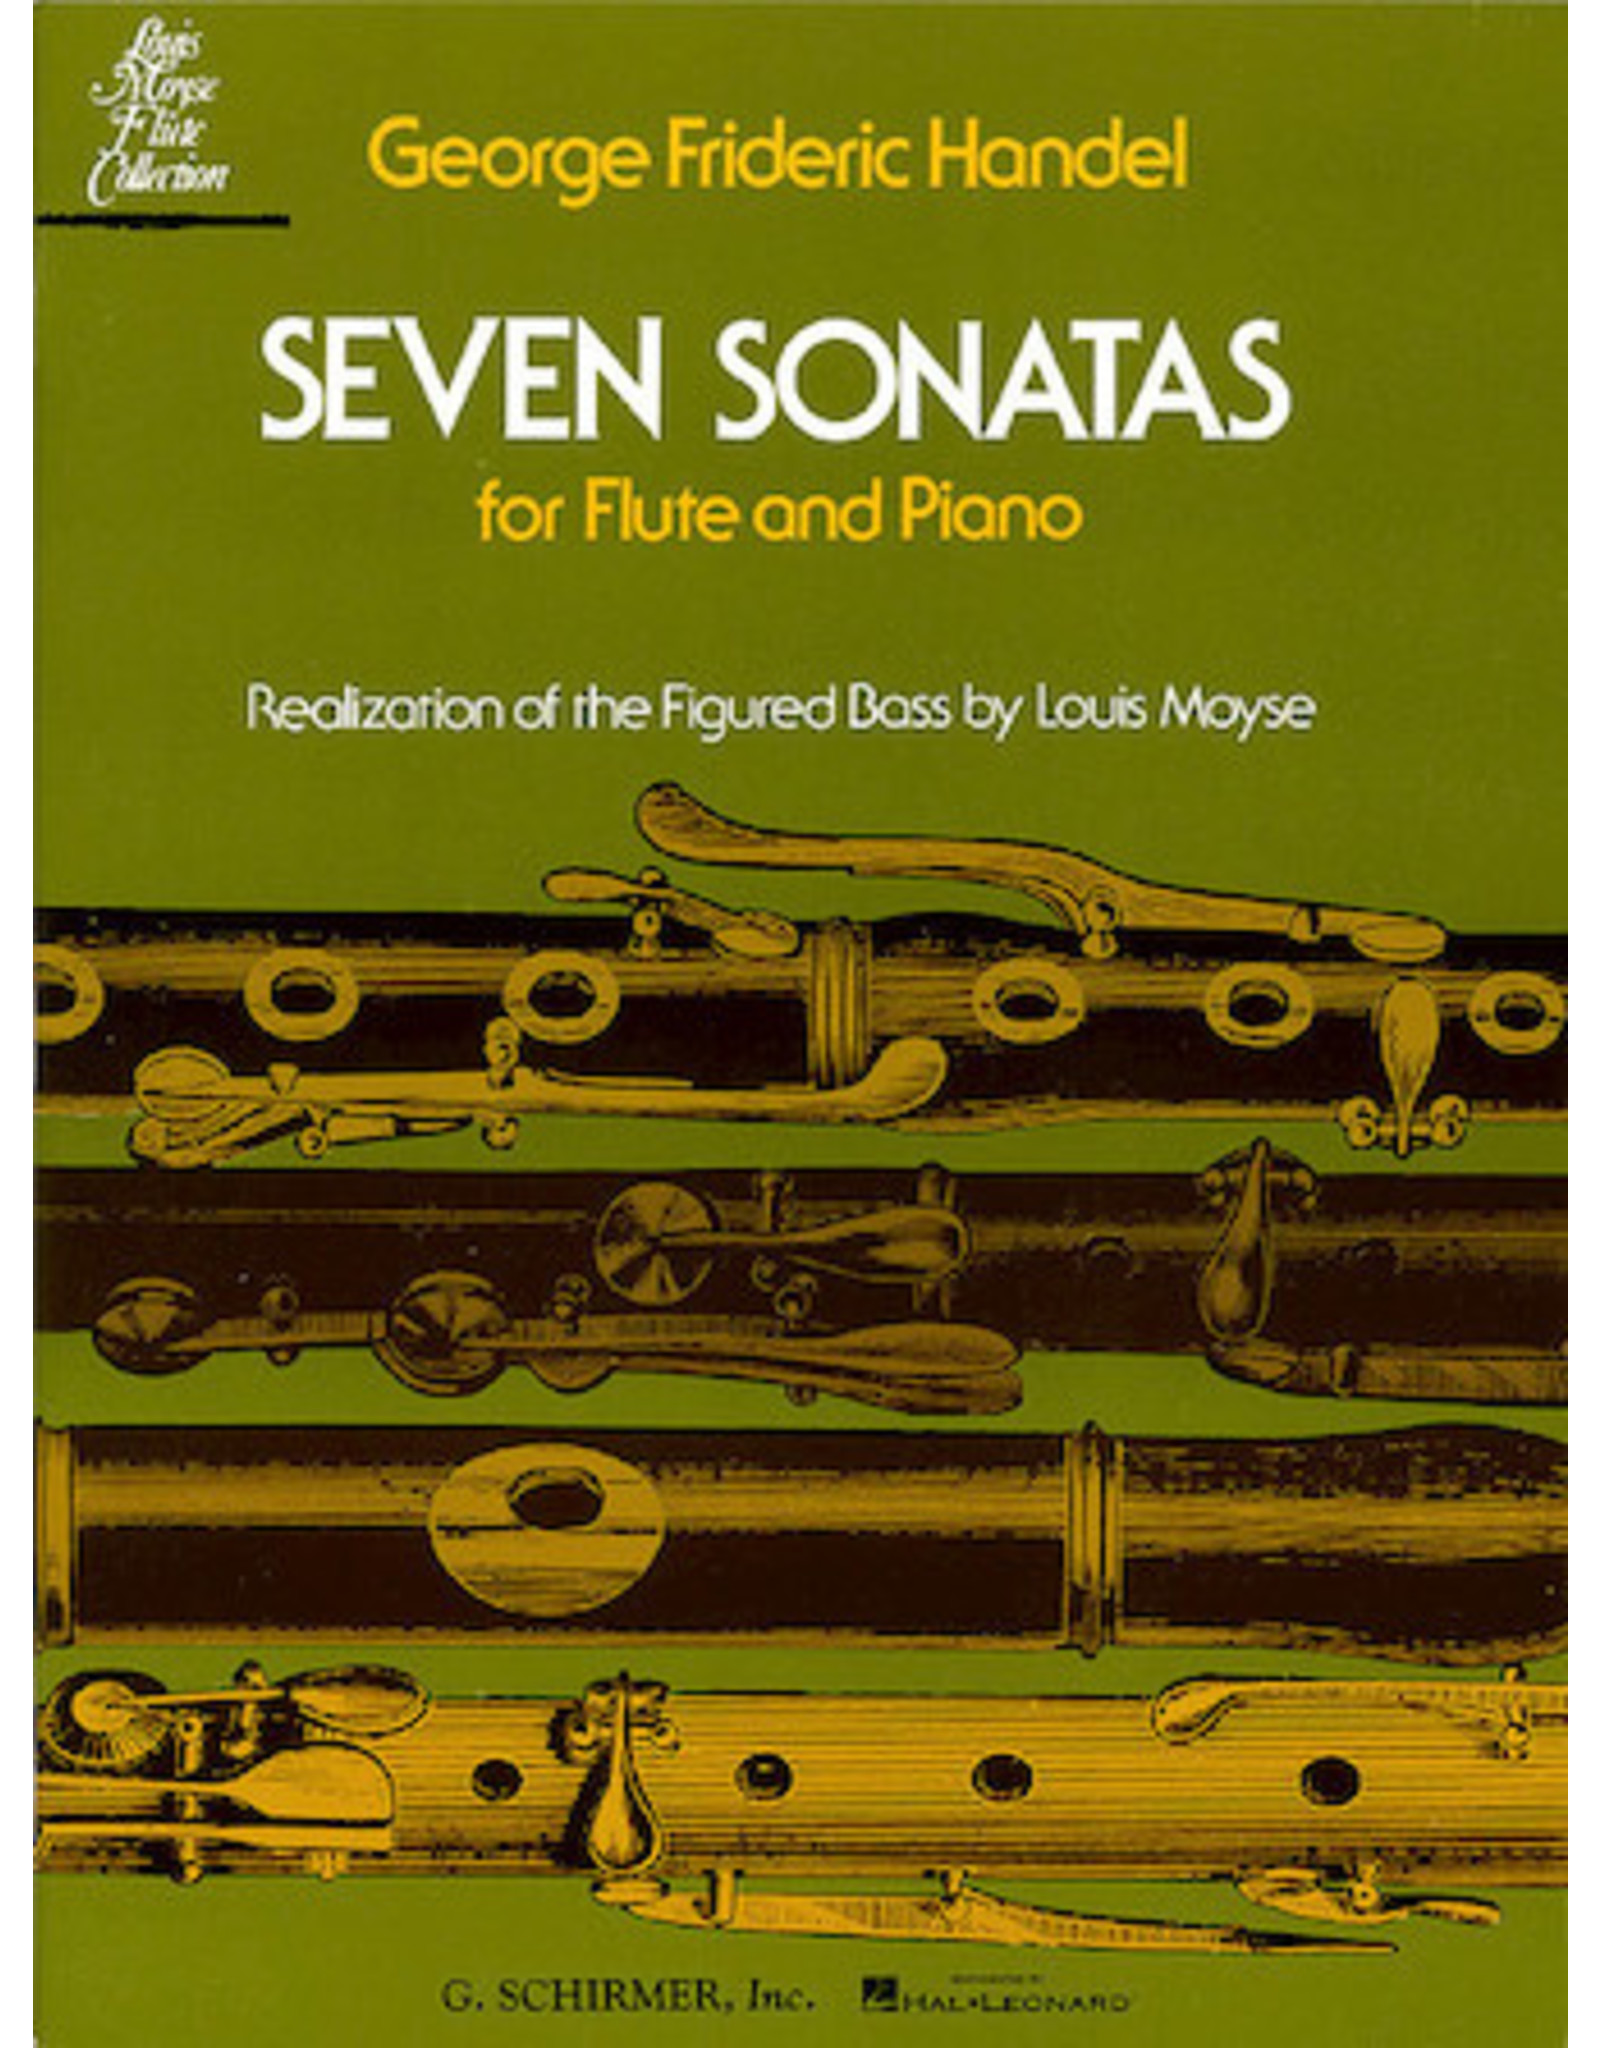 Hal Leonard Seven Sonatas for Flute & Piano arranged by Louis Moyse Woodwind Solo